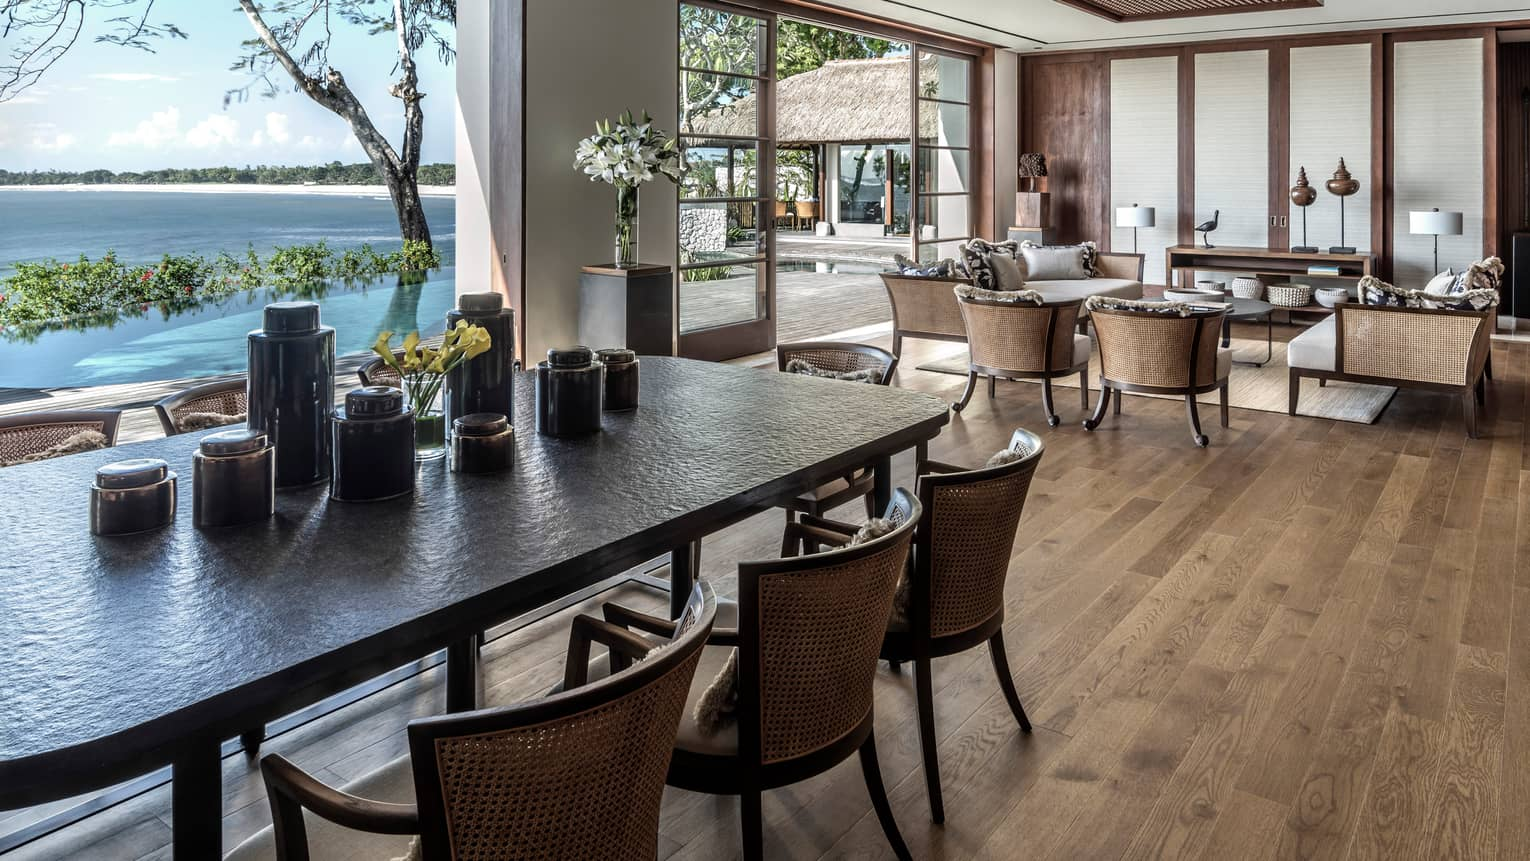 Long private dining table with numerous black vases beside sitting area with wicker furniture, open walls to patio, ocean